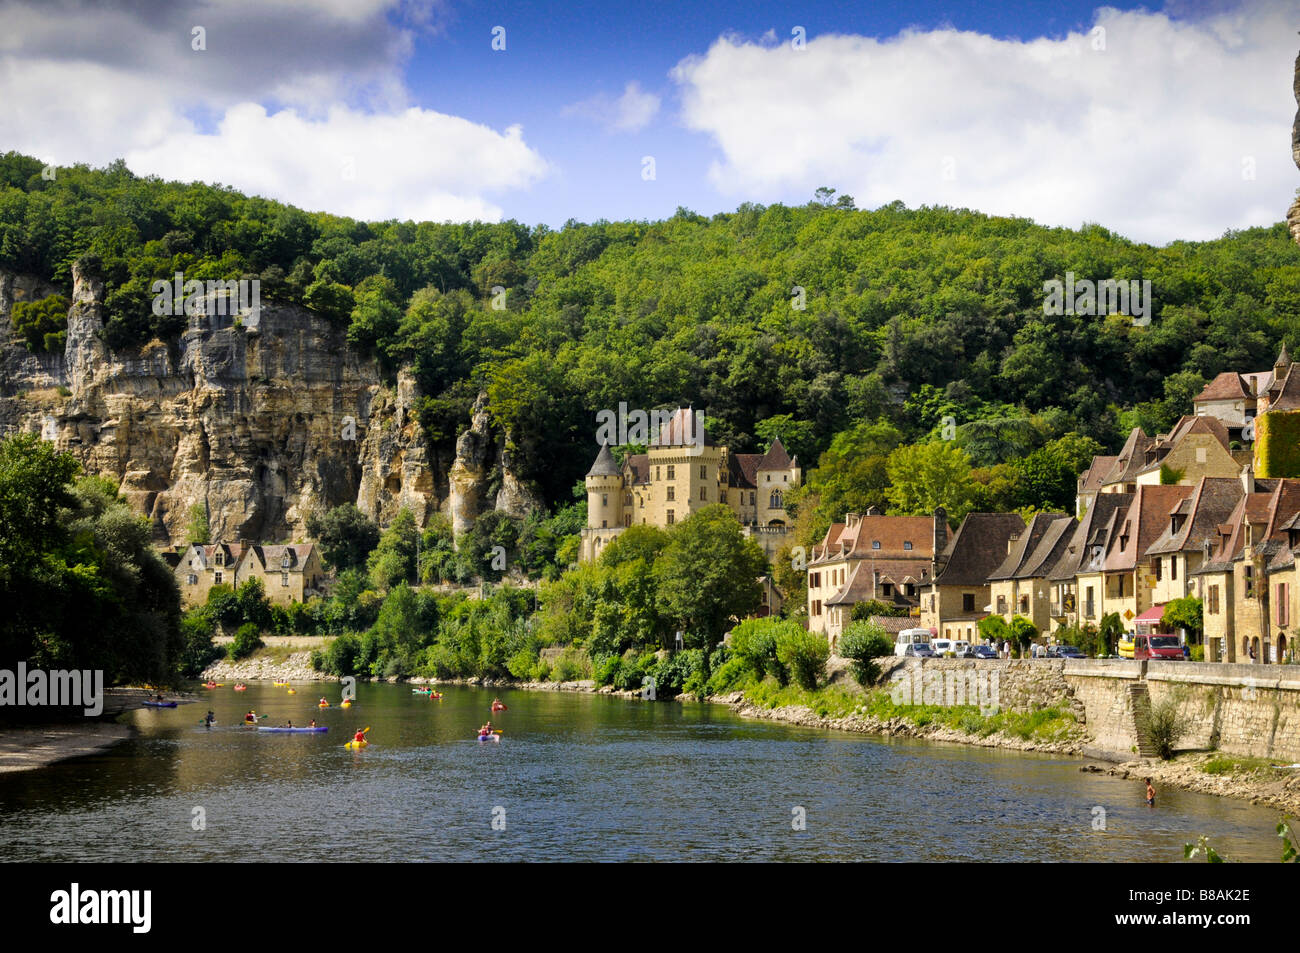 A river scene in the Dordogne region of France, La Roque-Gageac Stock Photo